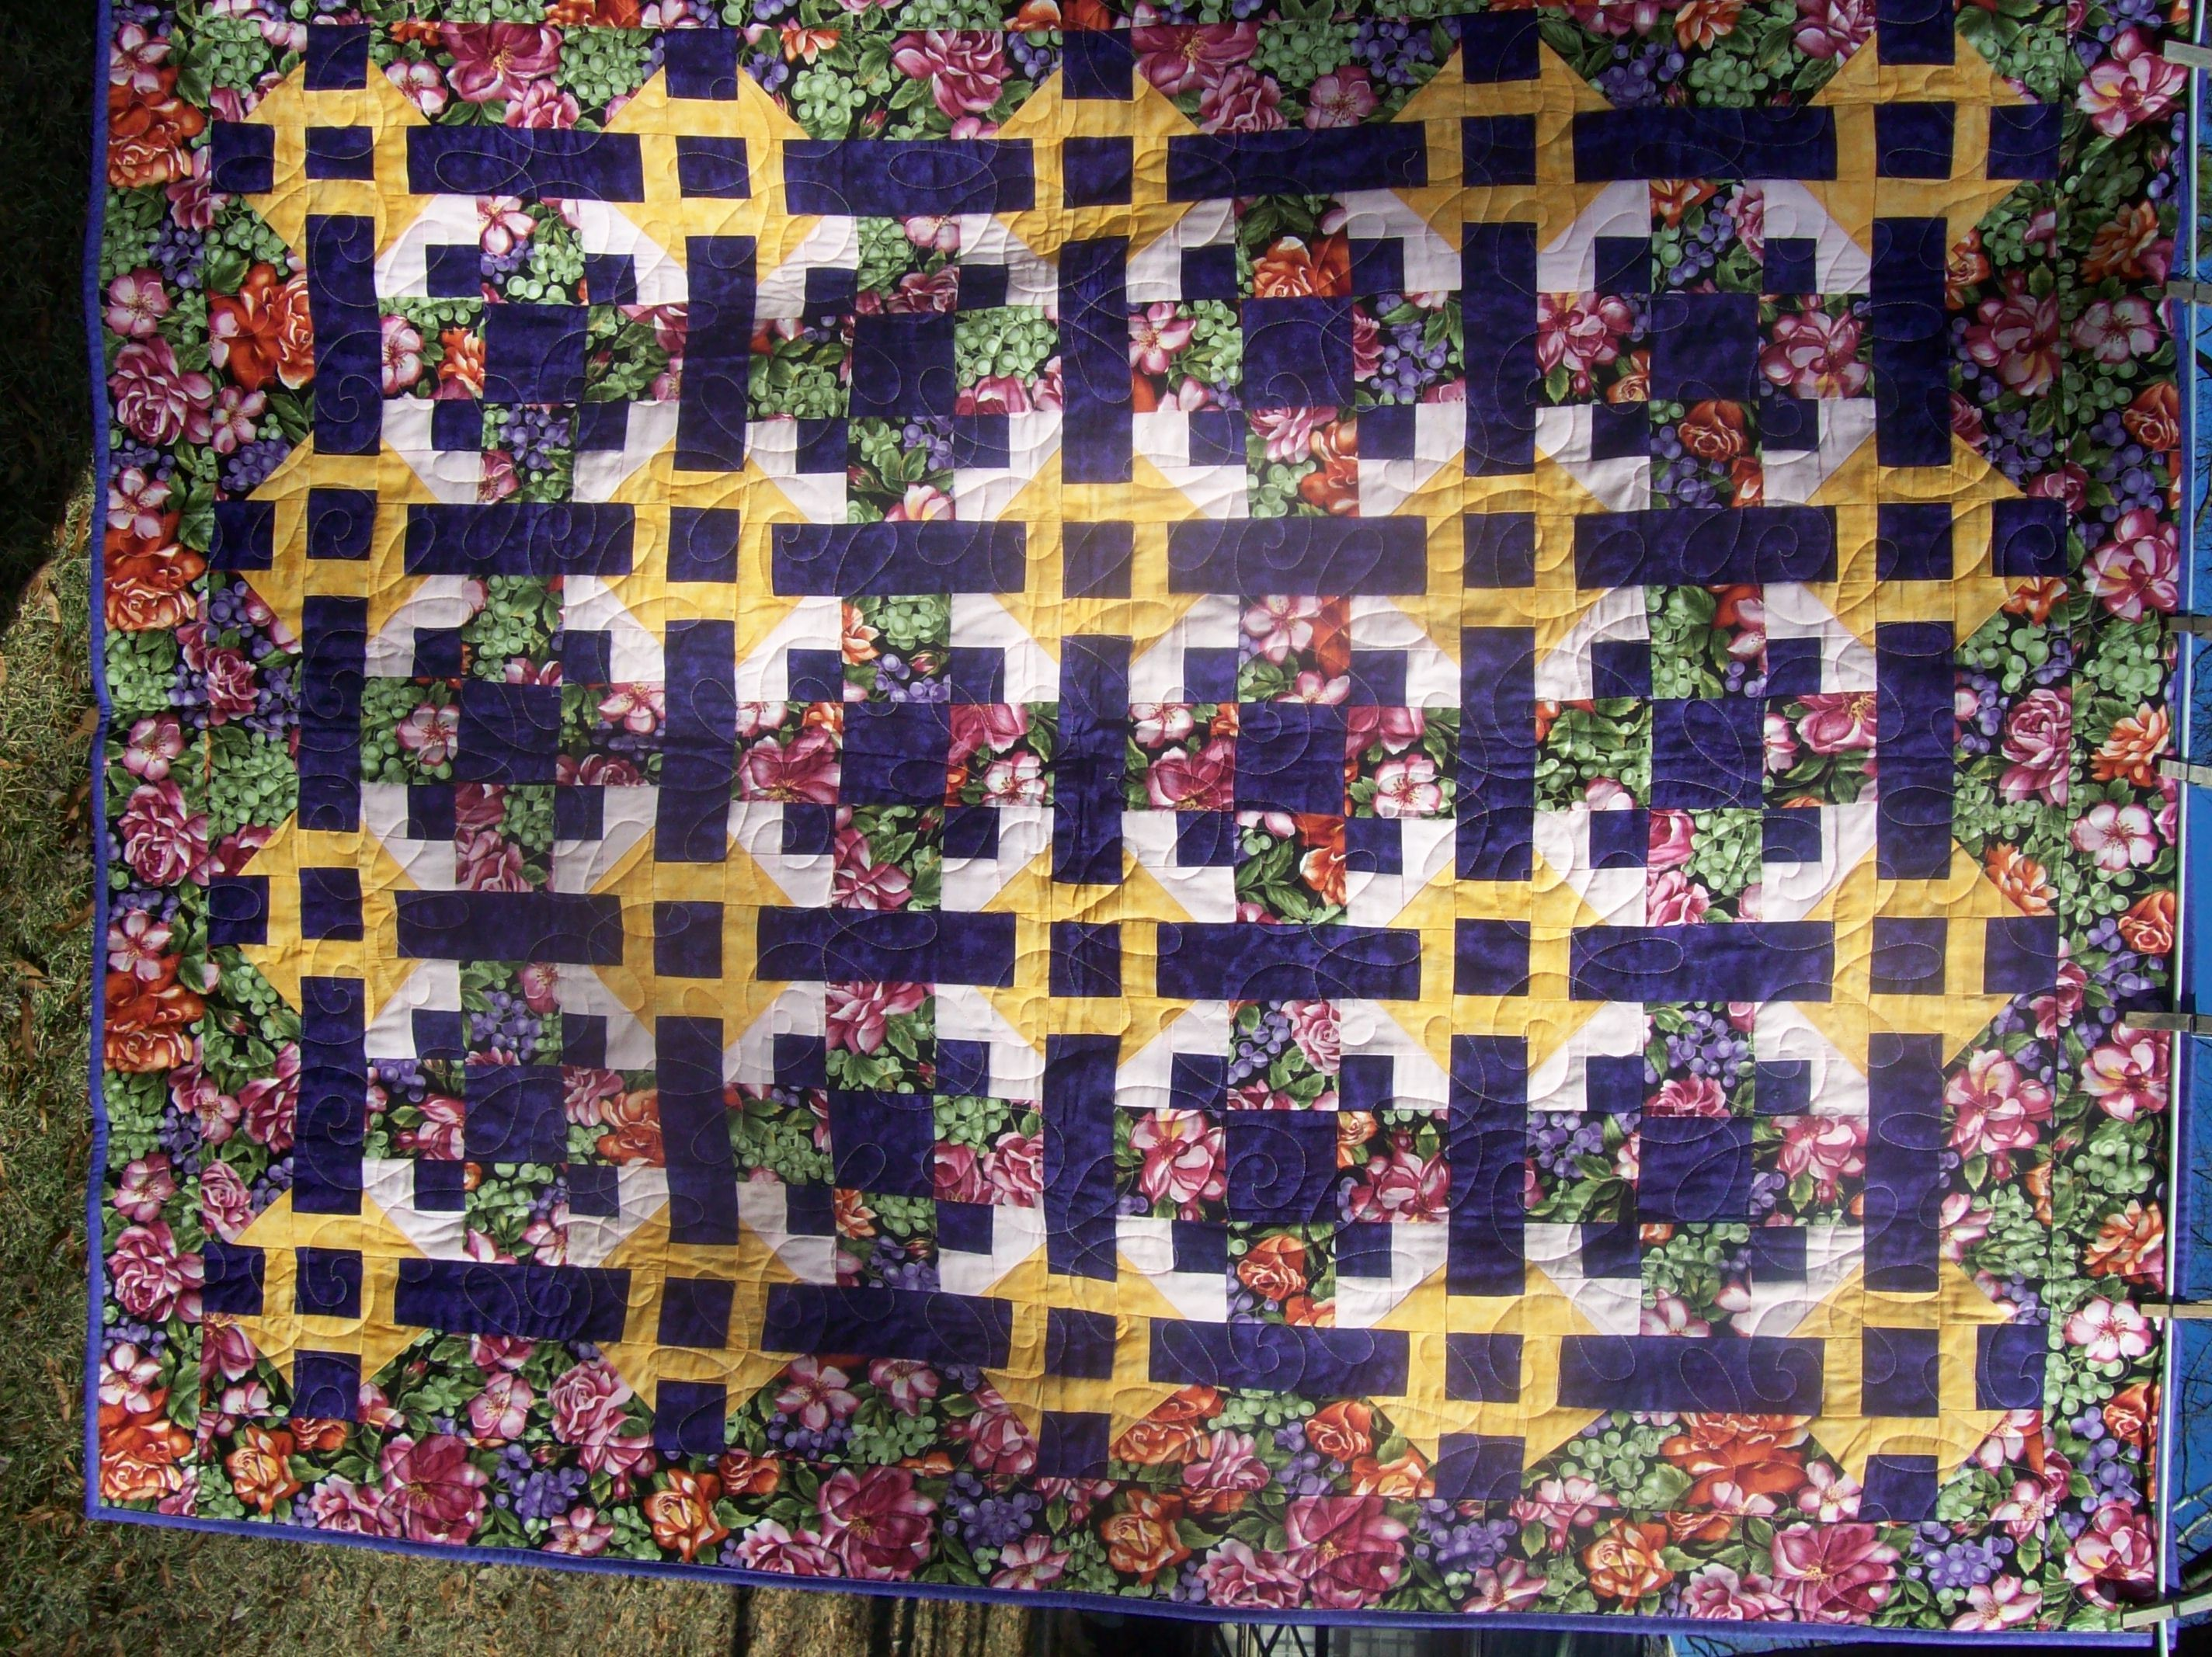 I Made This Quilt In A Quilt Guild Mystery Quilt Class Quilting Class Mystery Quilt Quilts